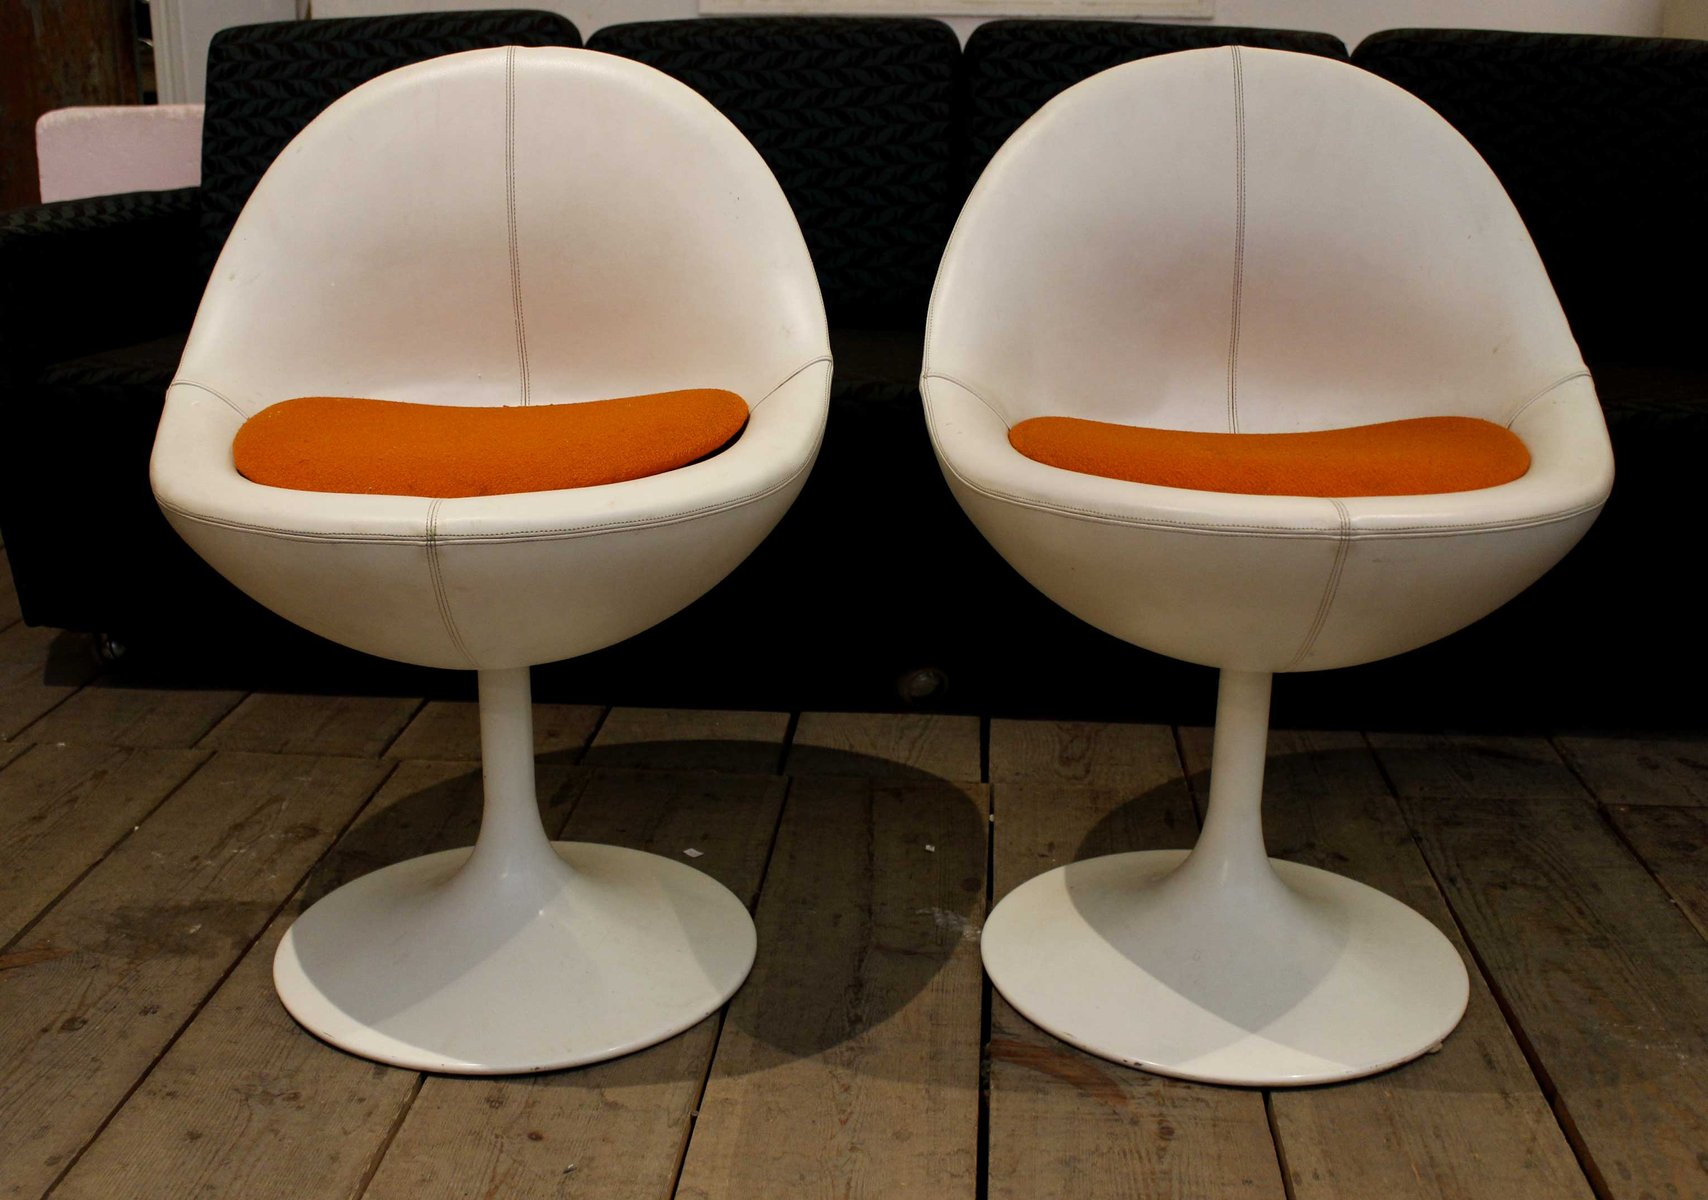 Vintage White Leather Chairs from Johanson Design Set of 2 for